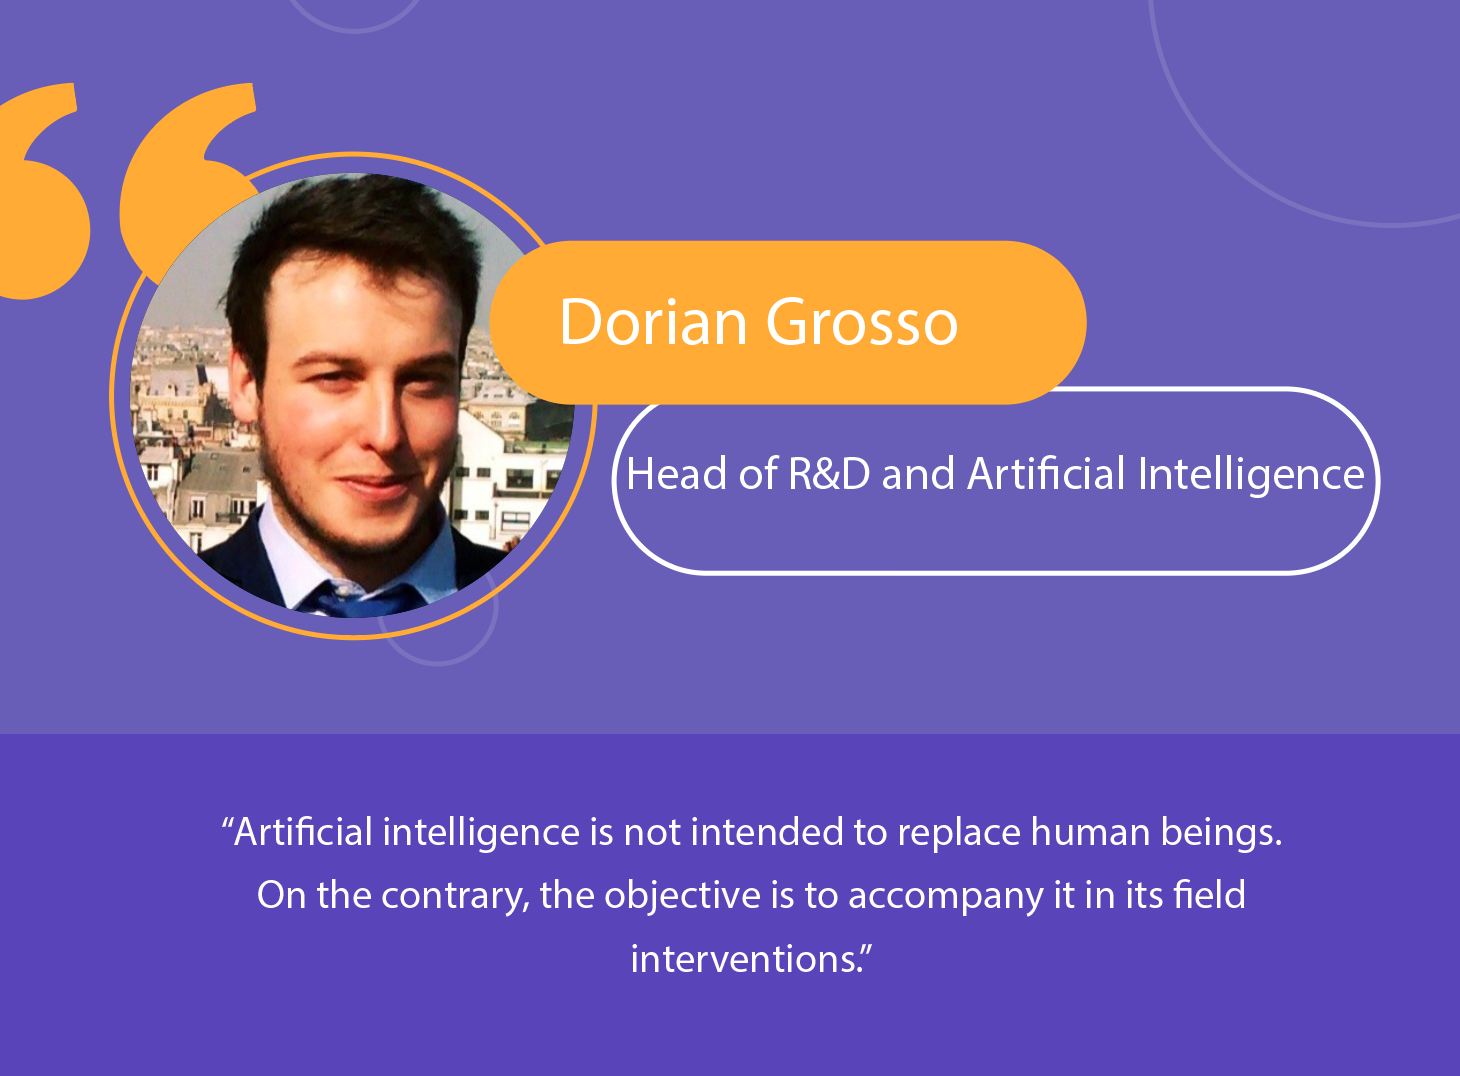 Industry: Artificial intelligence as a complement to humans